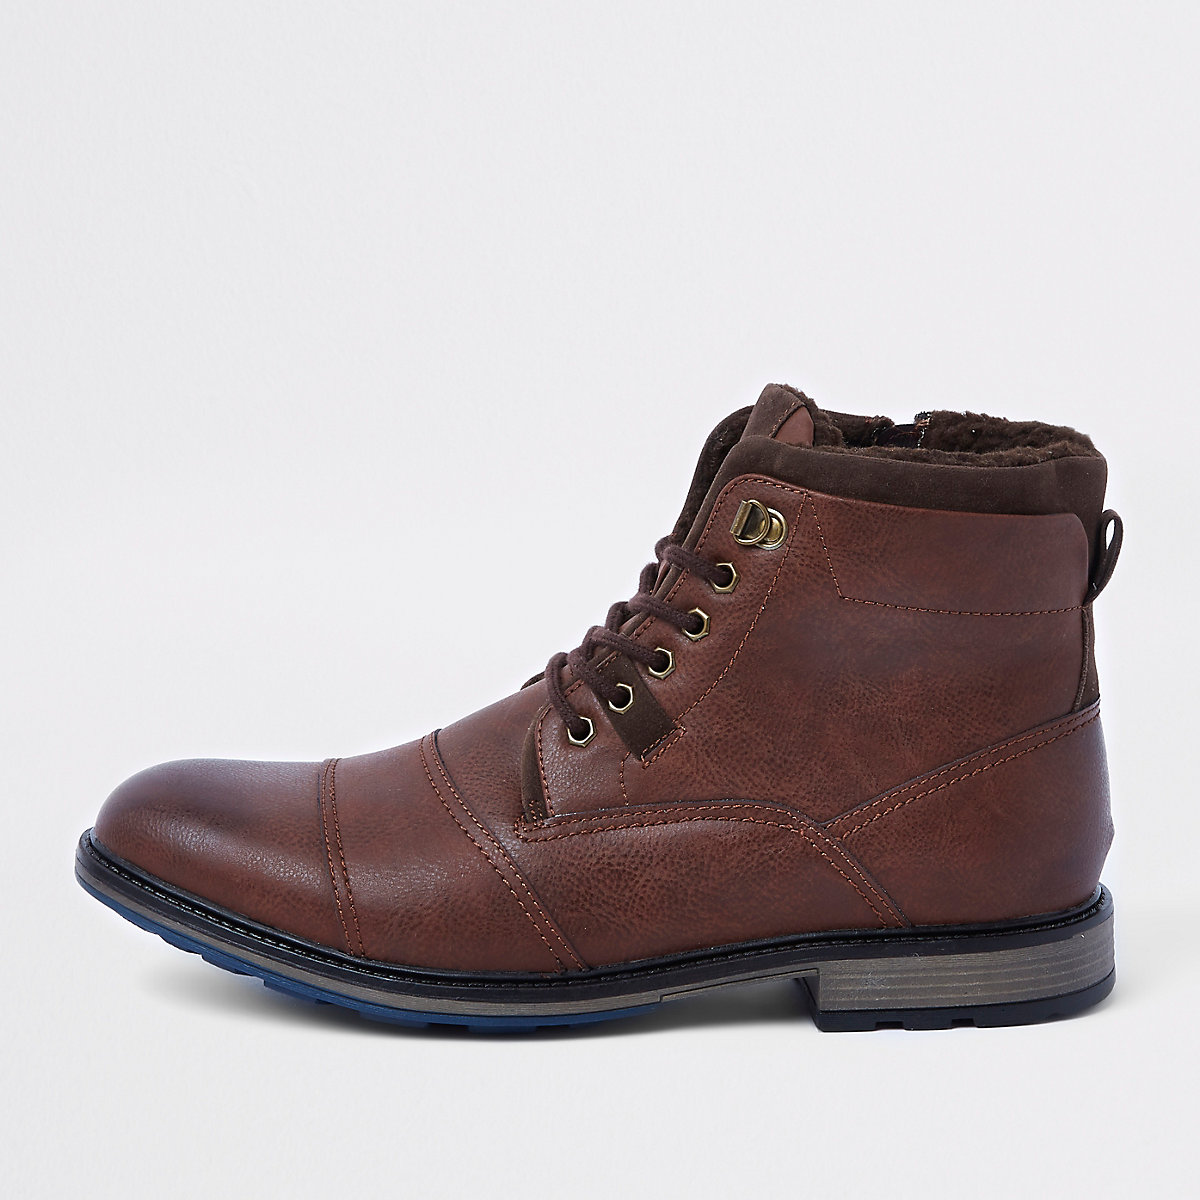 Brown lace-up borg lined military boots